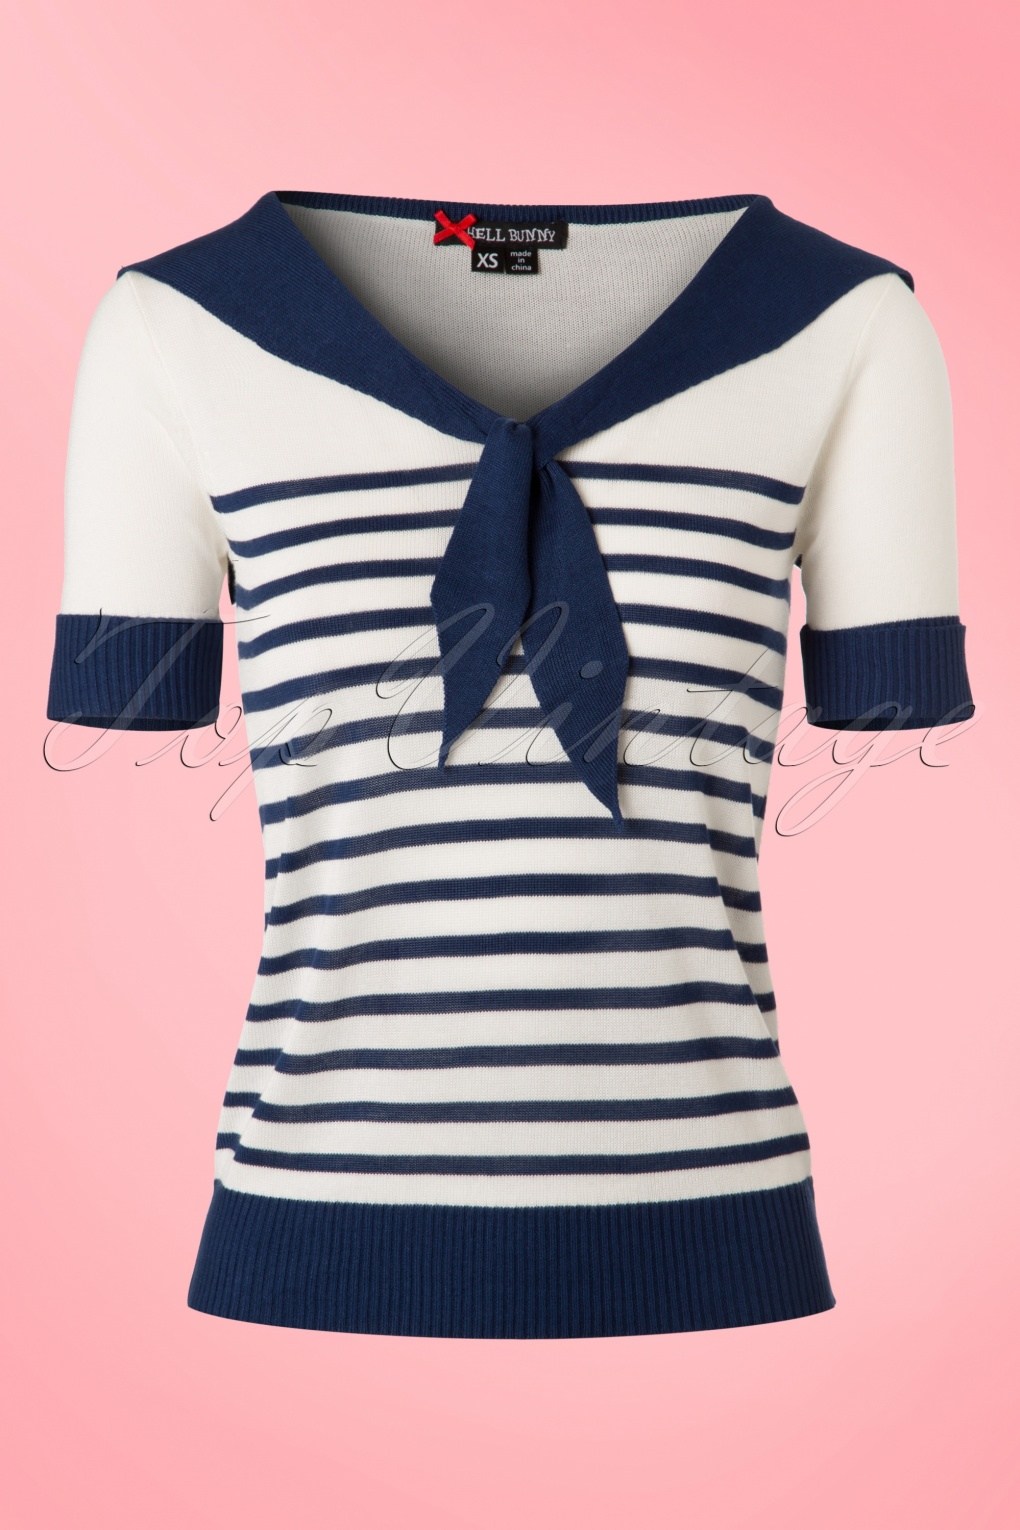 1950s Rockabilly & Pinup Tops, Shirts, Blouses 50s Coco Sailor Top in Navy and Ivory £25.73 AT vintagedancer.com